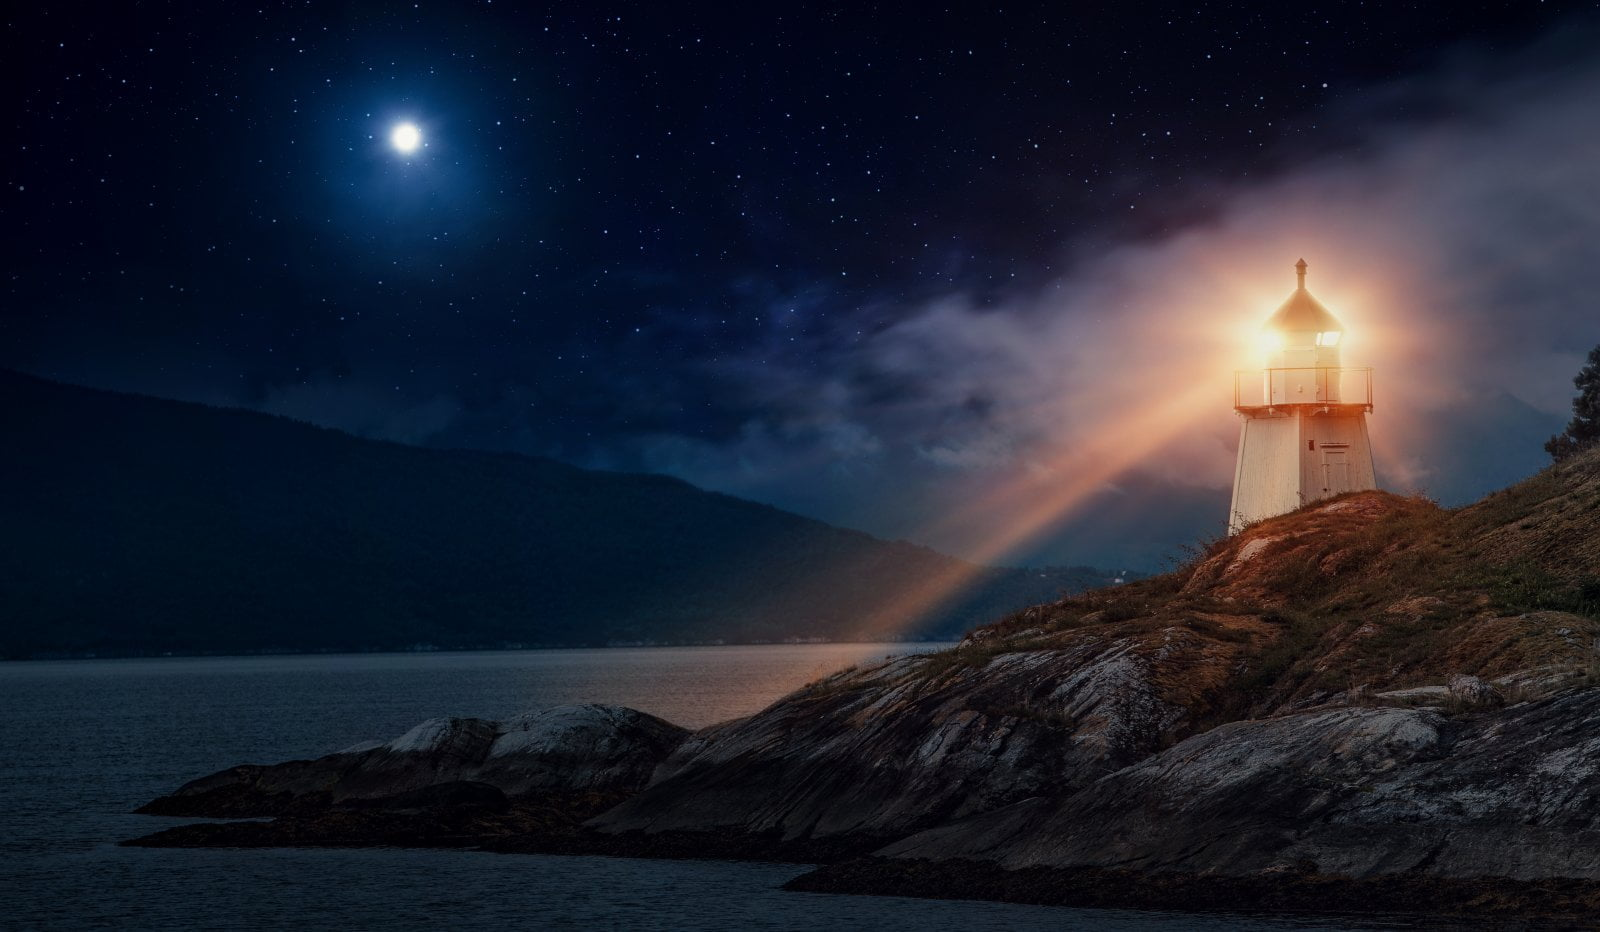 A lighthouse in Norway at night on the Norwegian coastline